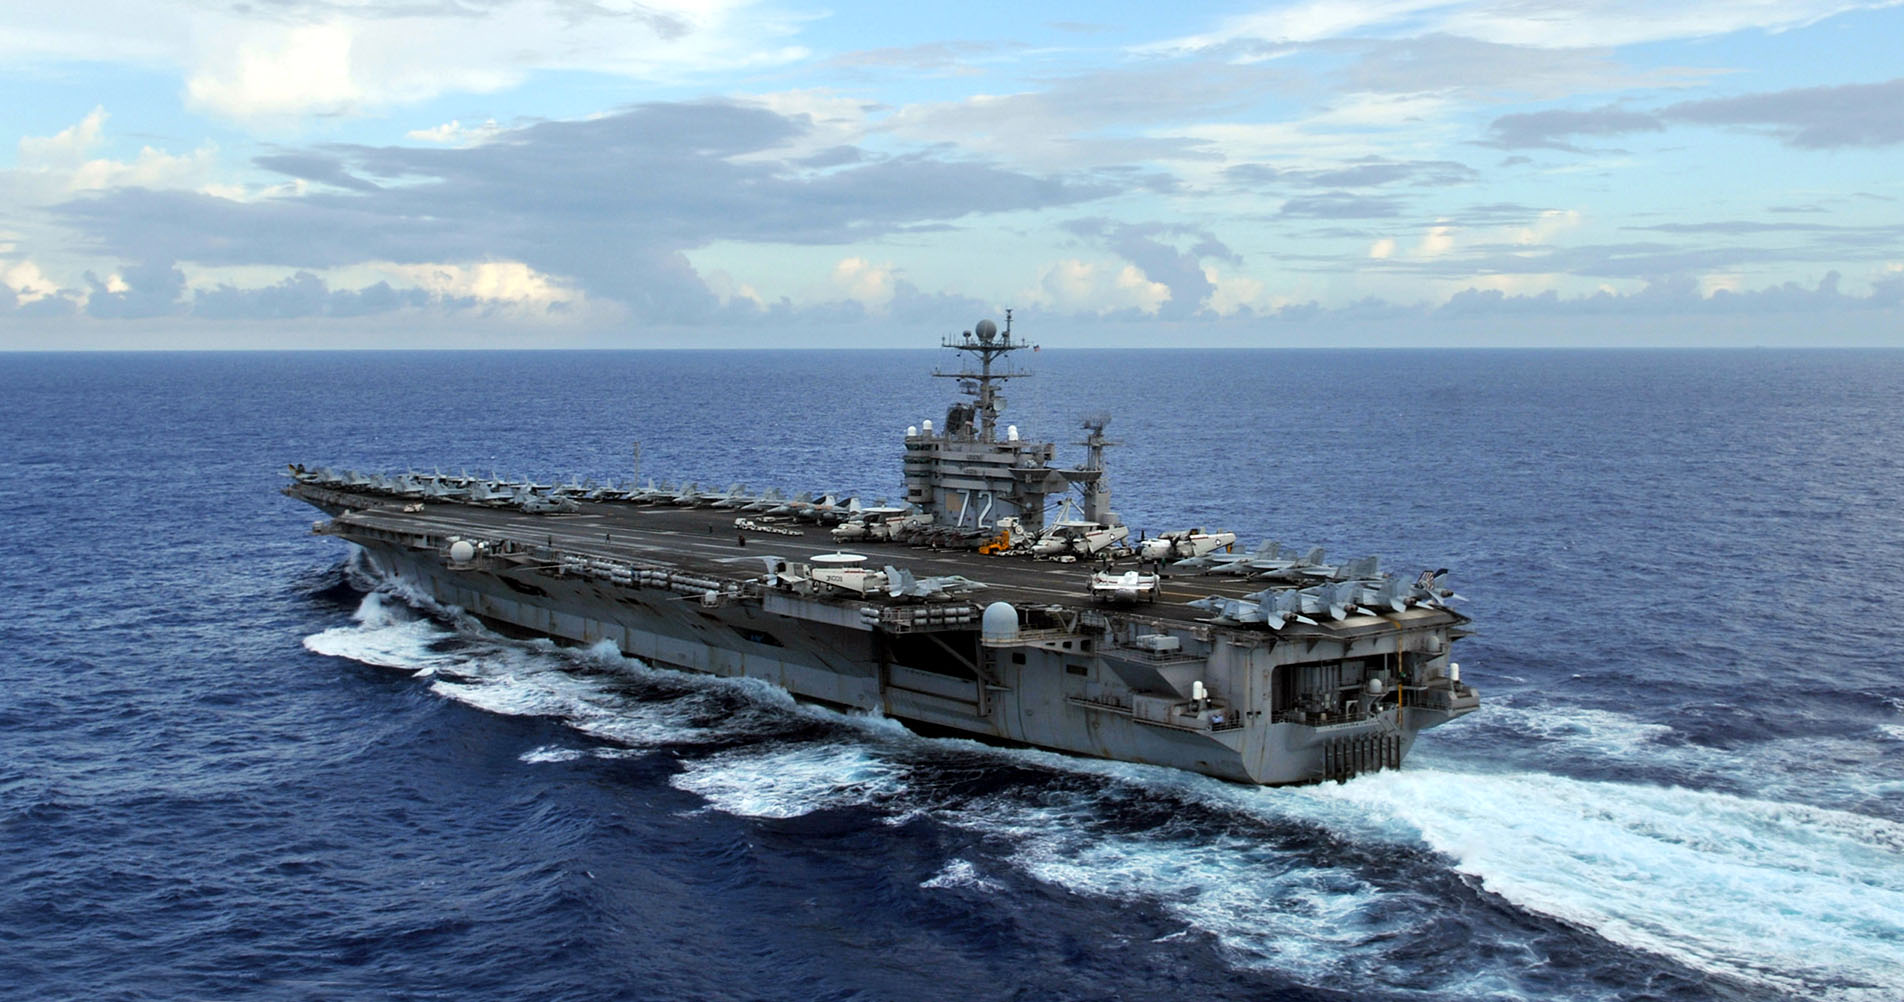 Navy aircraft from Carrier Air Wing TWO aboard USS Abraham Lincoln (CVN 72) will conduct training exercises which include dropping flares and bombs between 10-11 p.m. over the two day period.